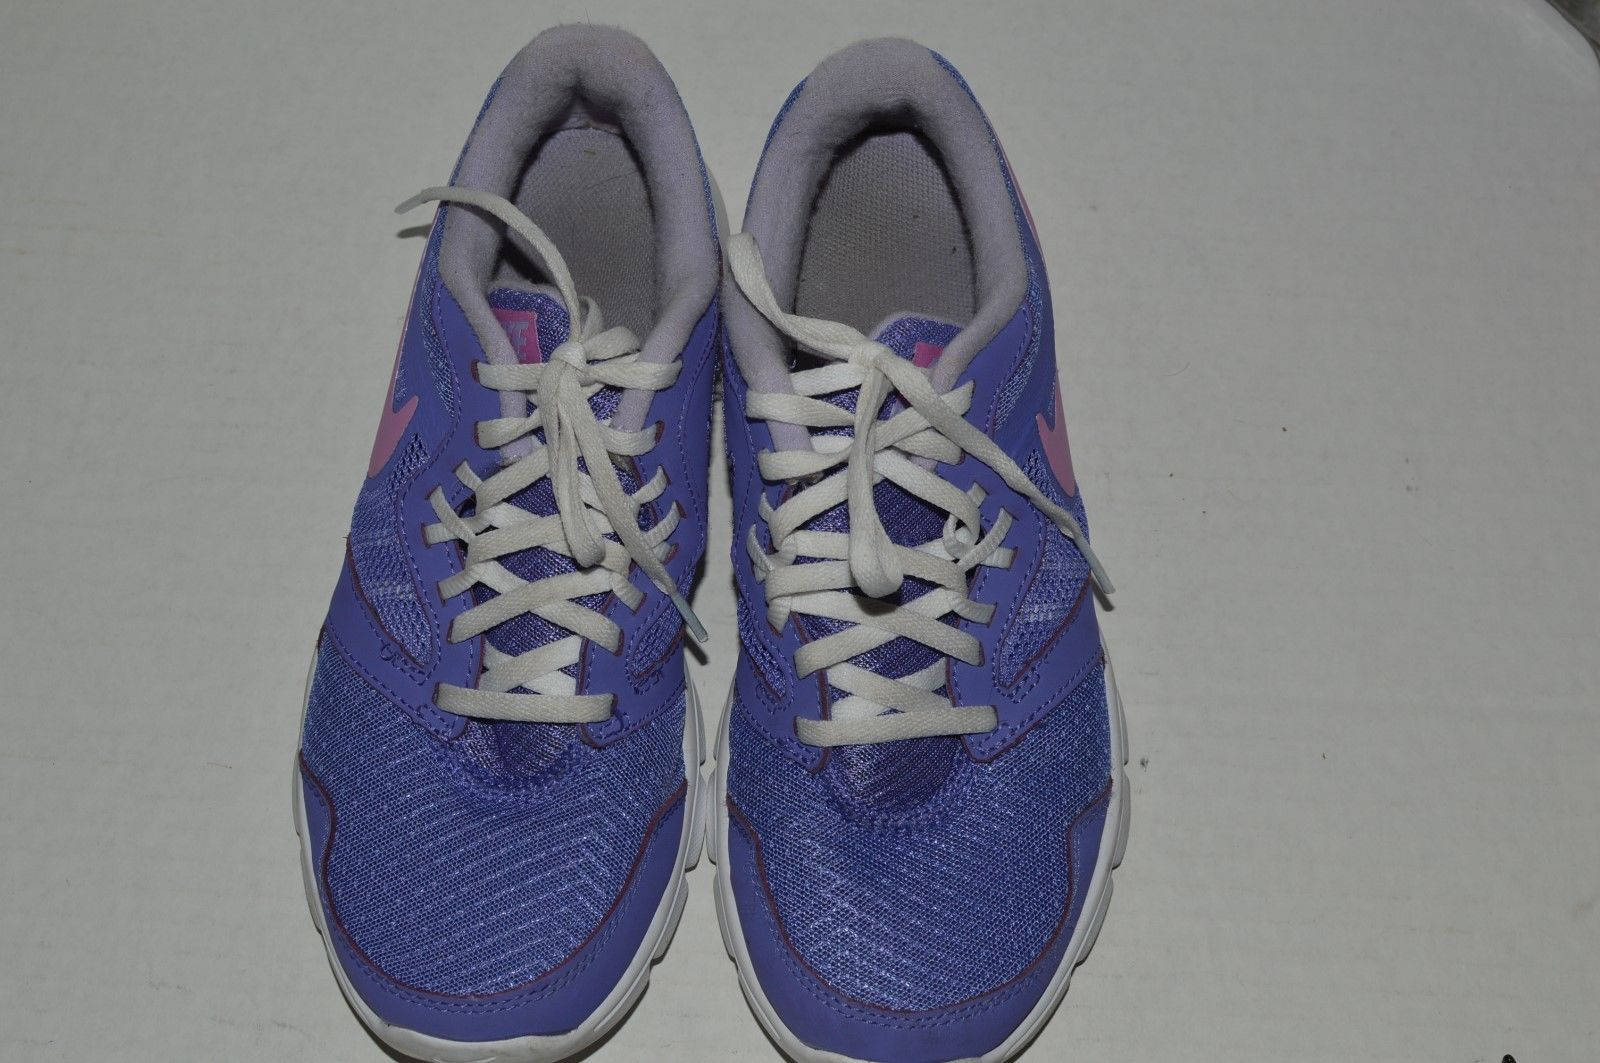 new arrival 21c77 44d52 Nike Womens Sneakers Size 6 Purple and 50 similar items. S l1600